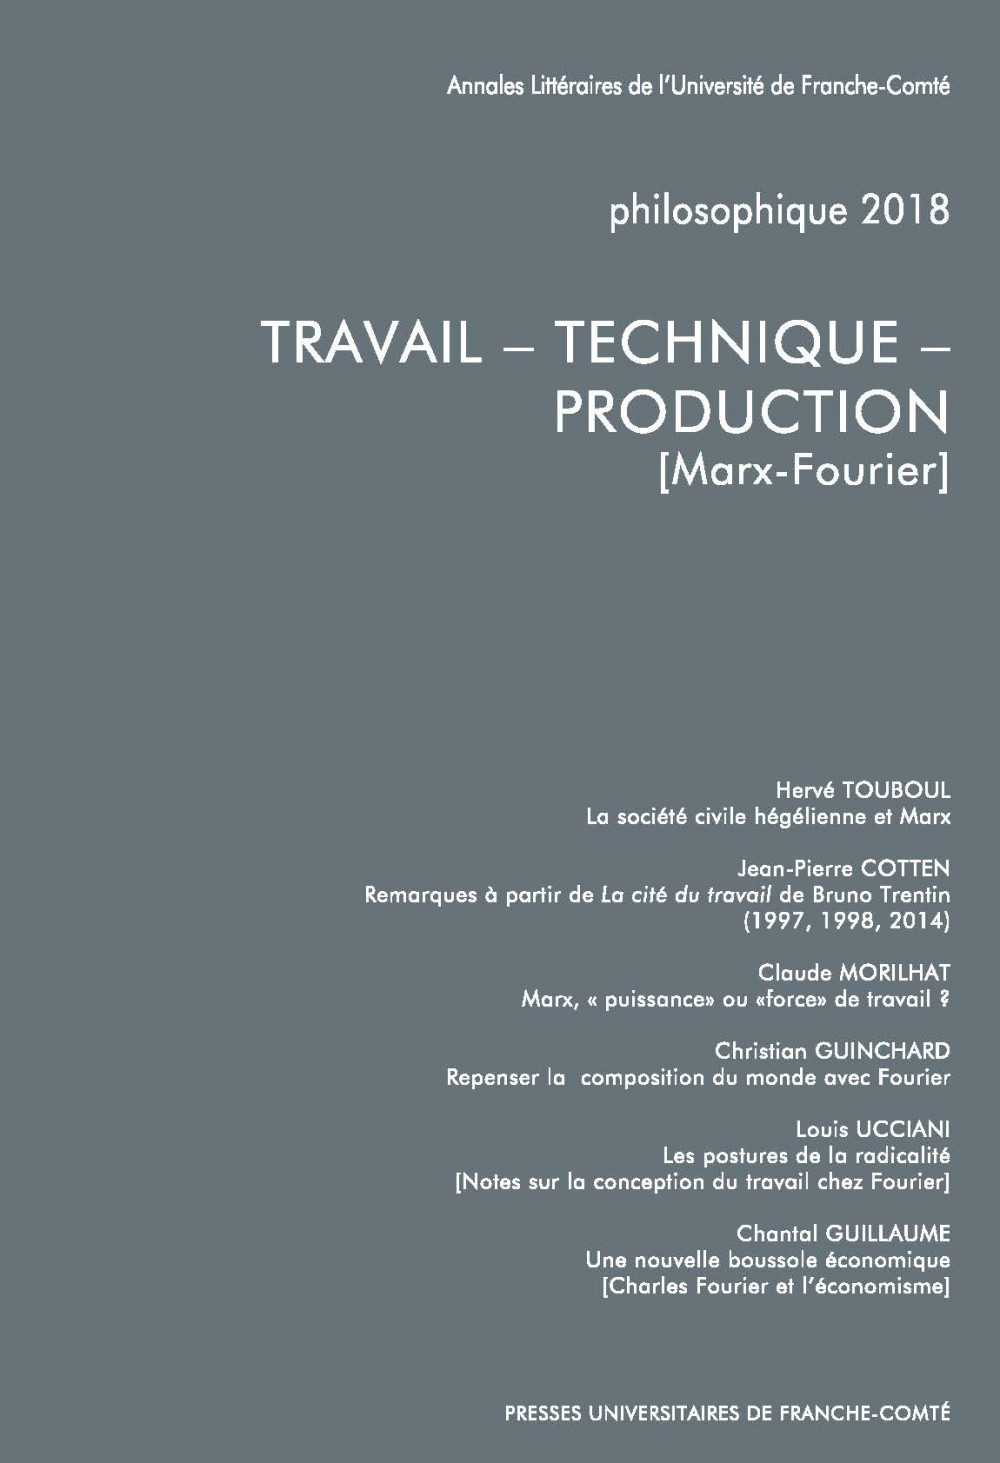 Philosophique 2018 : TRAVAIL – TECHNIQUE – PRODUCTION